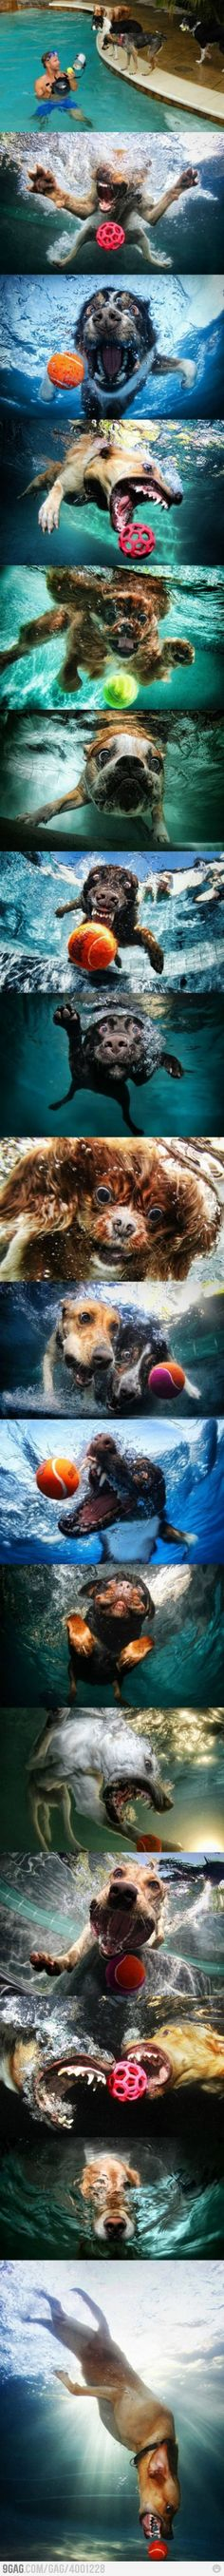 Dogs diving into a pool for toys. What an awesome idea for photos.